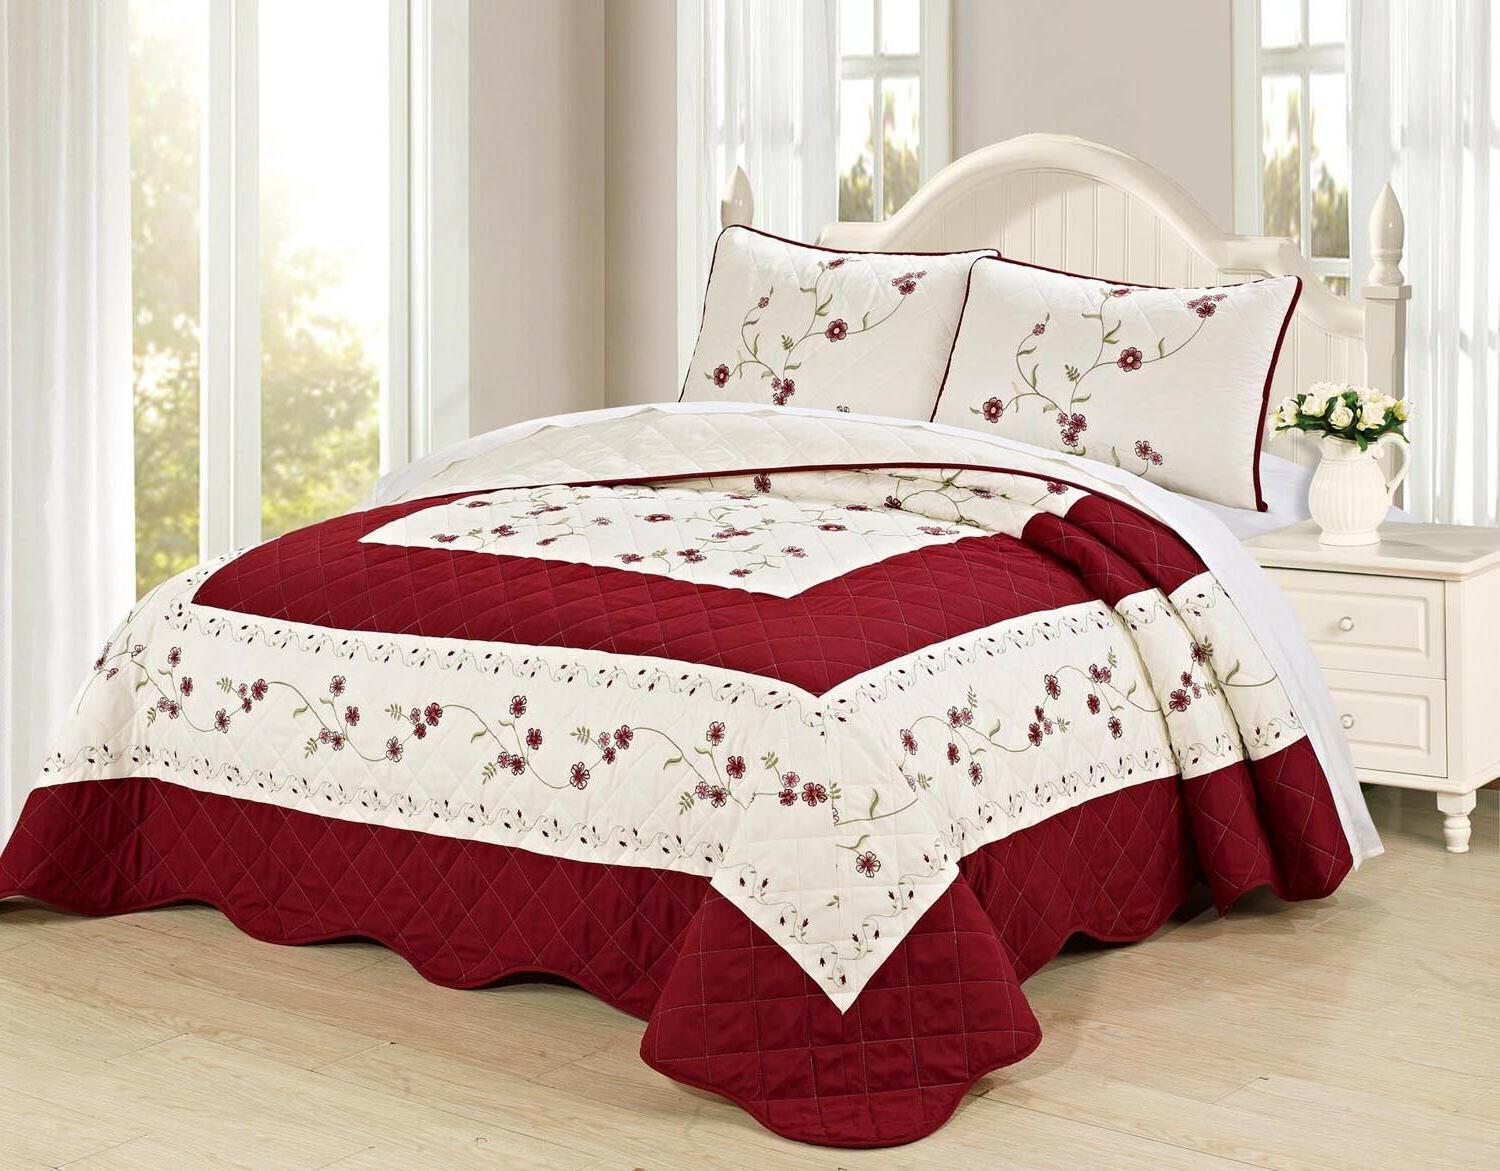 new 3pc embroided floral bedspread quilt set